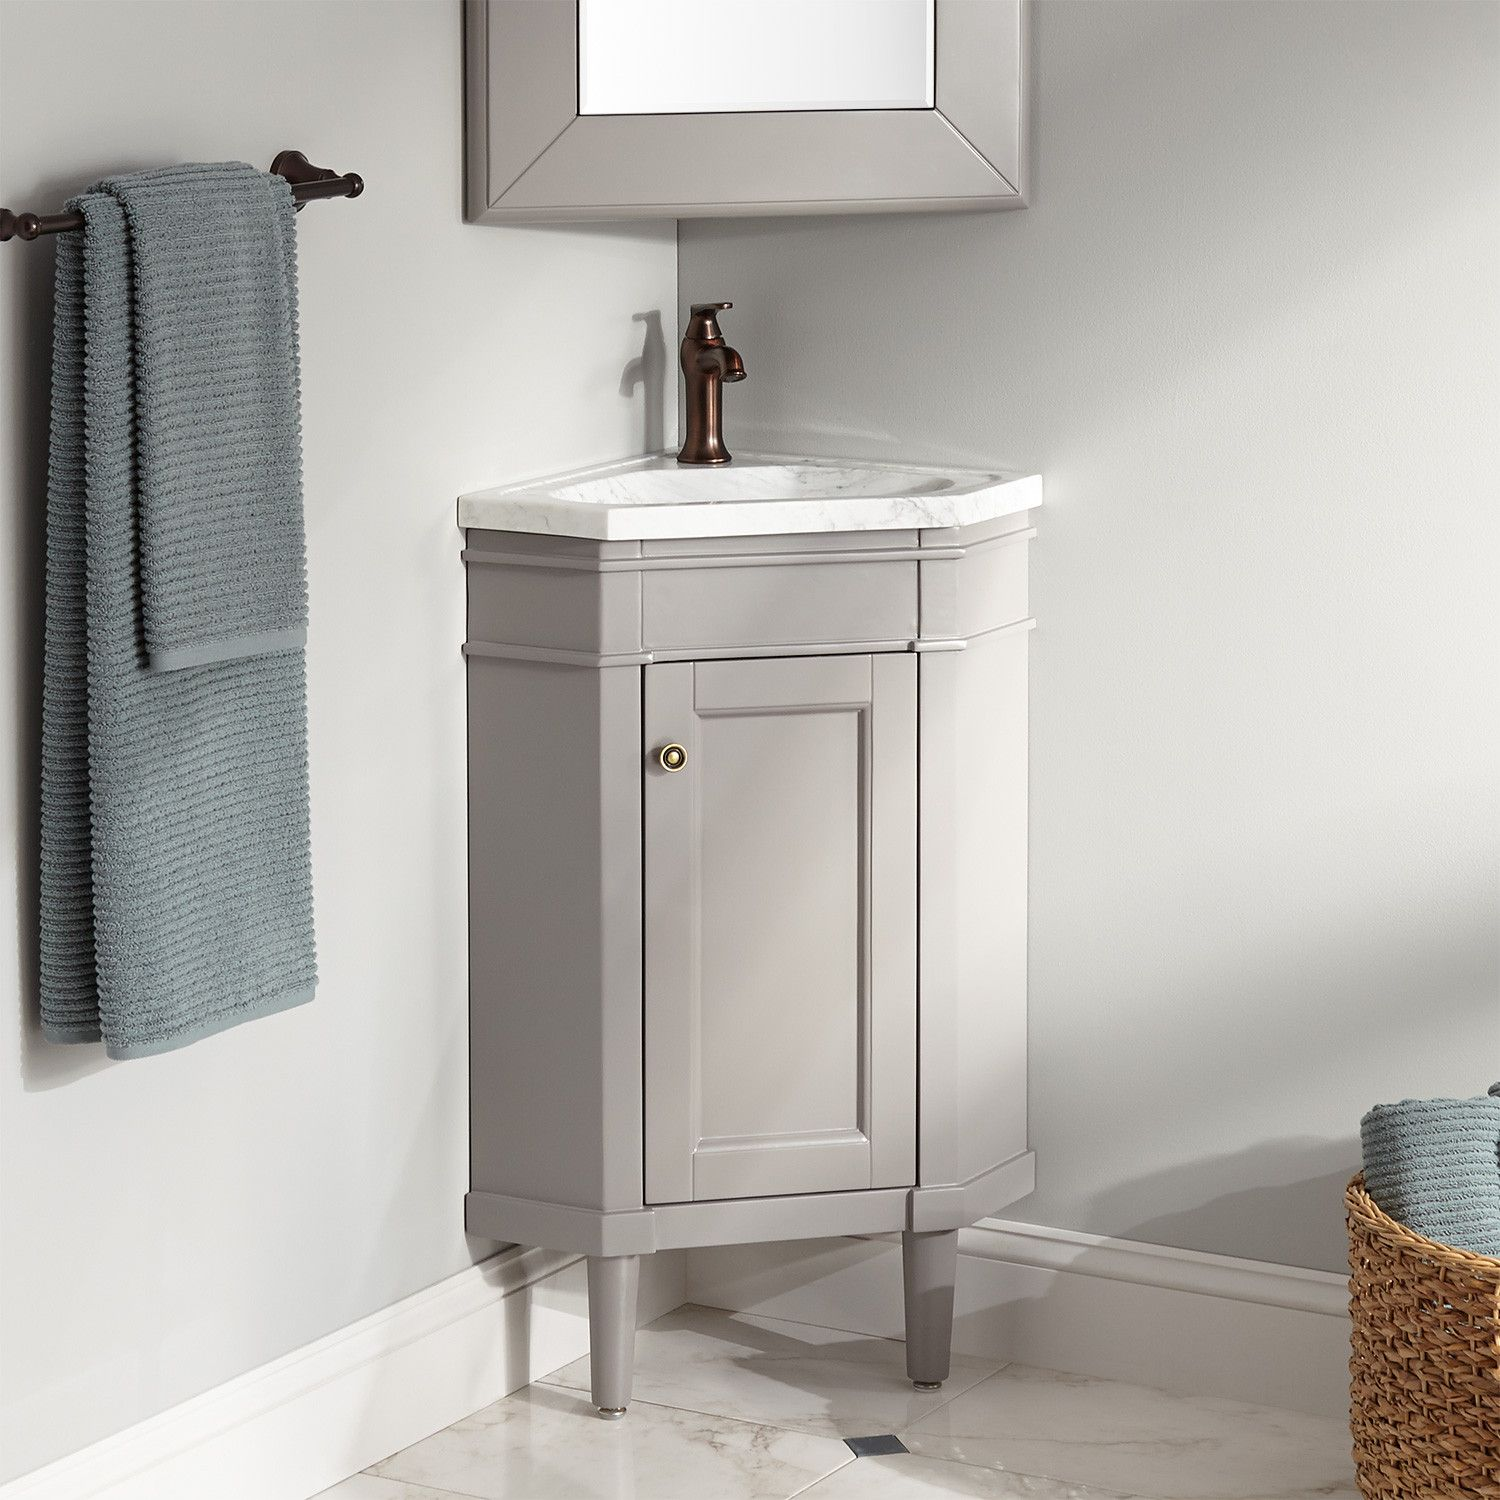 23 Winstead Gray Corner Vanity With Carrara Marble Top Narrow Vanities Bathroom Vanities Bathroom Corner Vanity Bathroom Top Bathroom Vanity